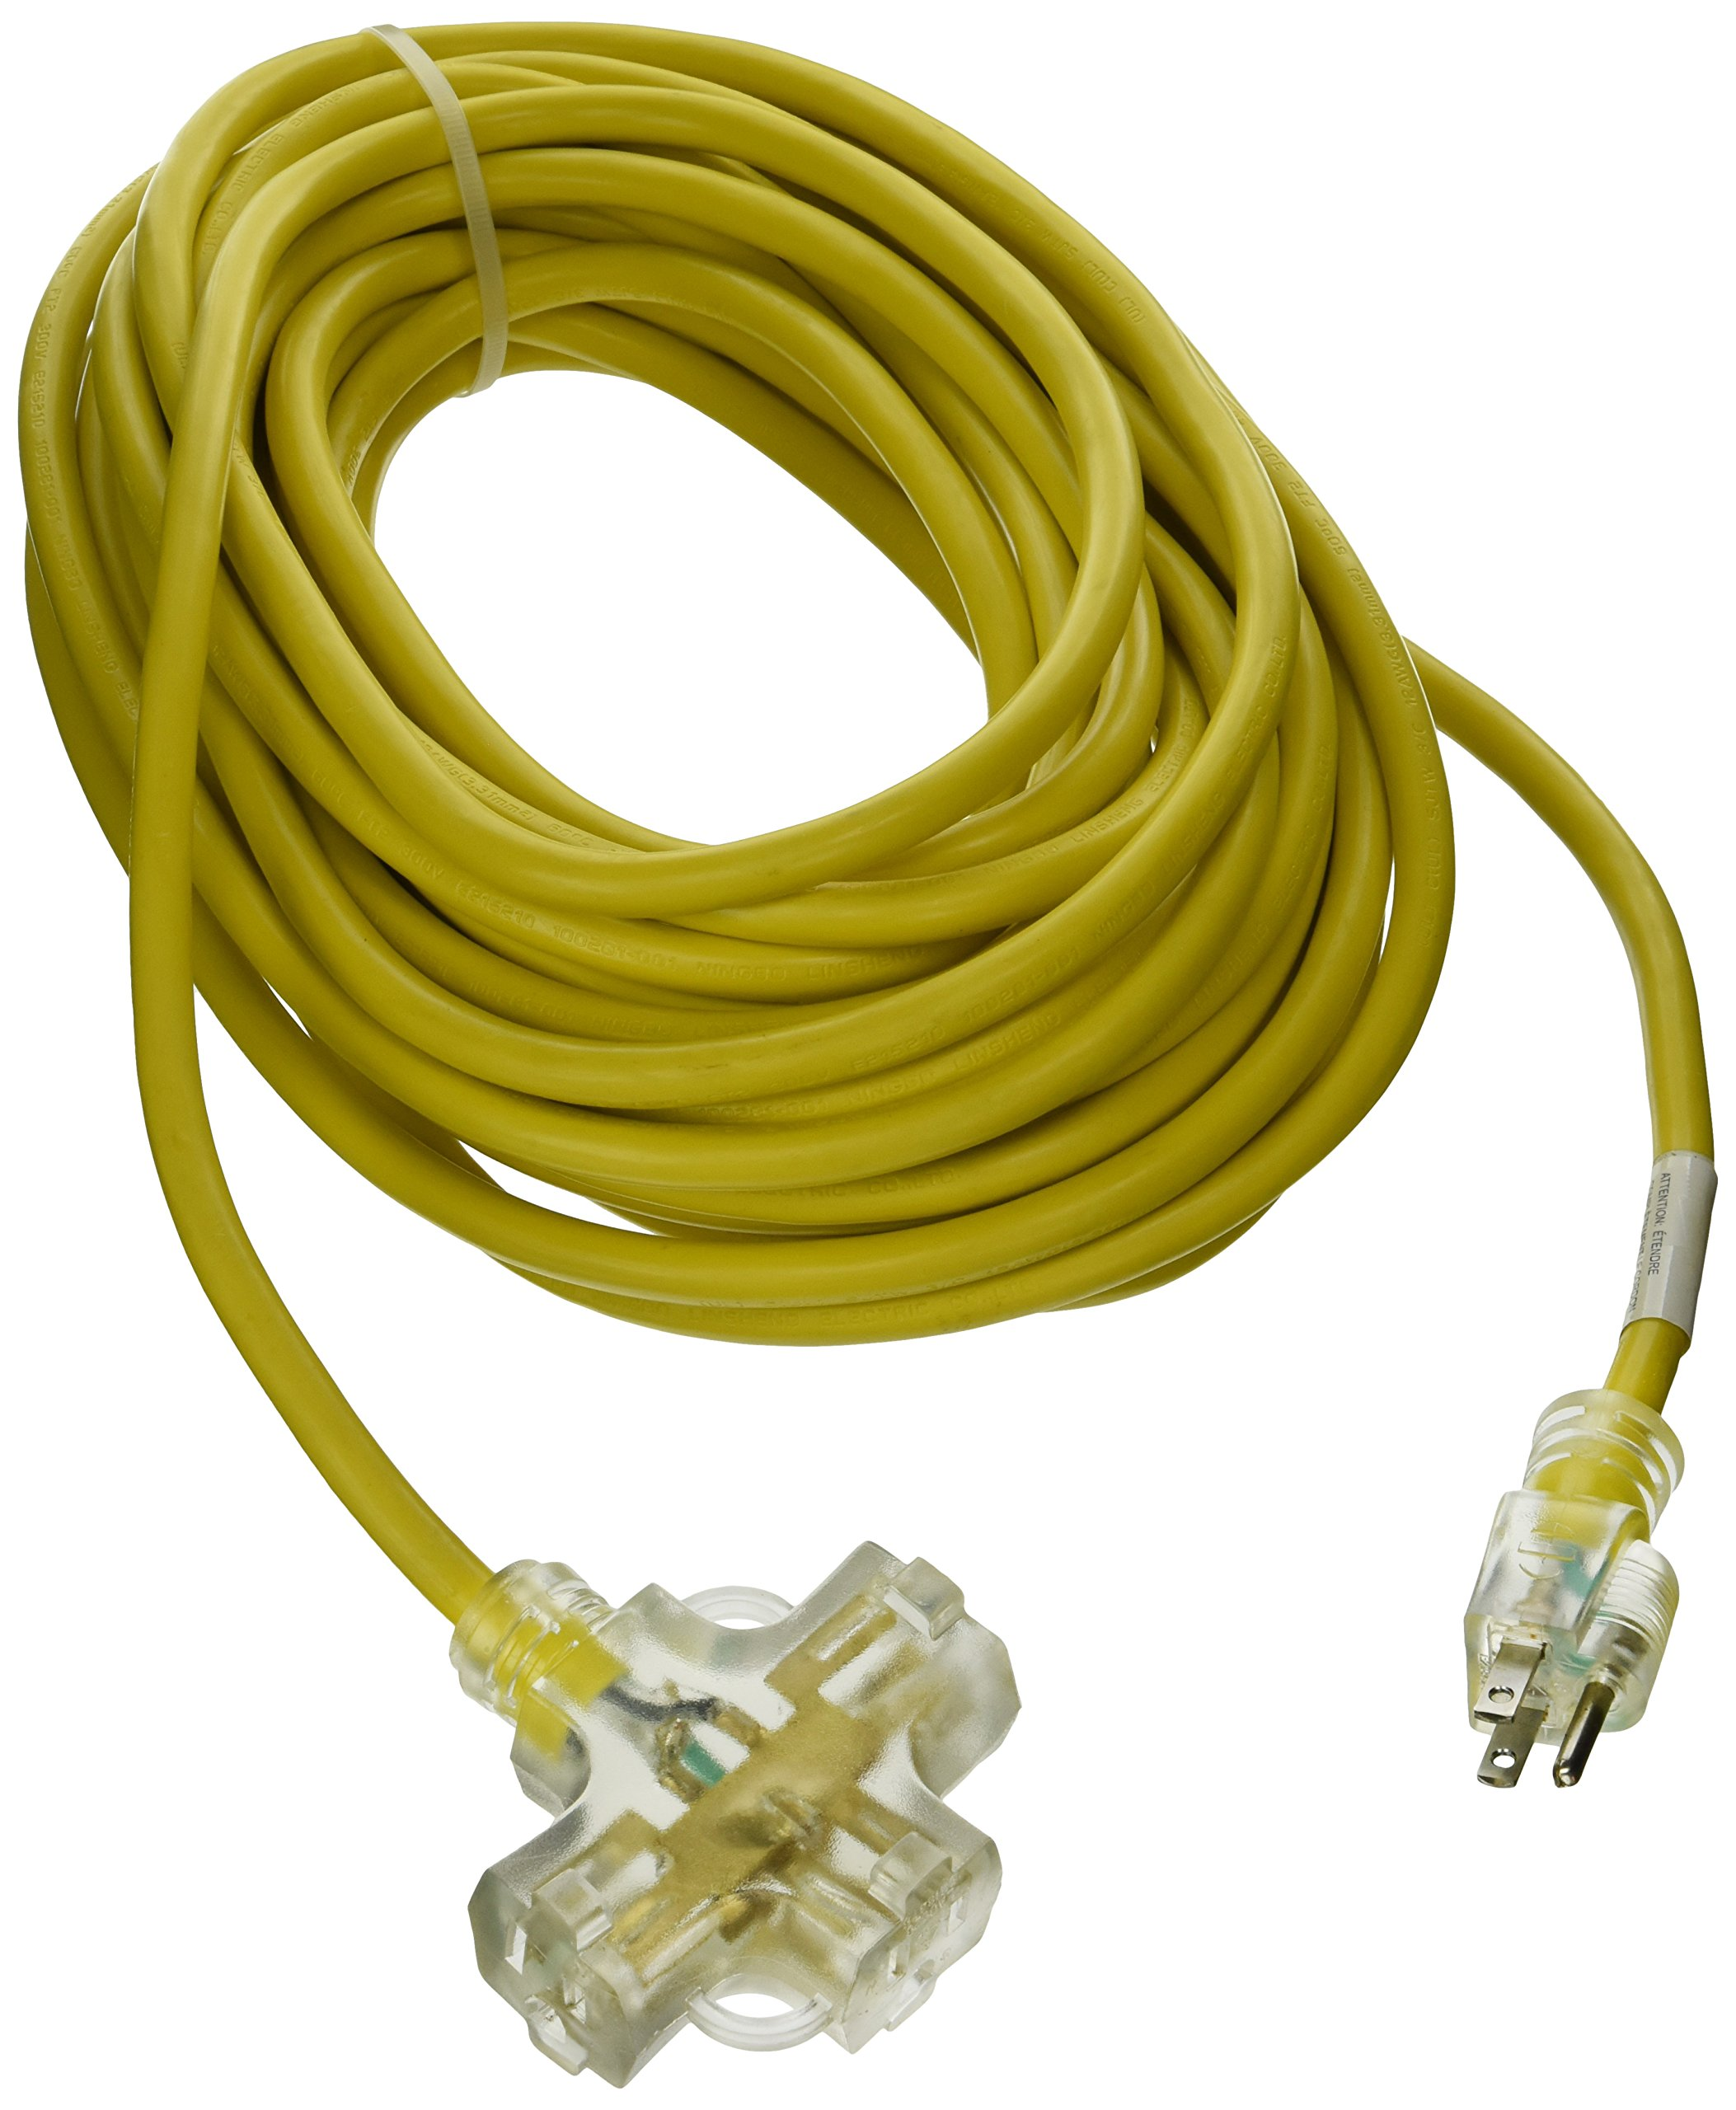 ATE Pro. USA 70053 Extension Cord, 50', 12 Gauge, 3-Prong